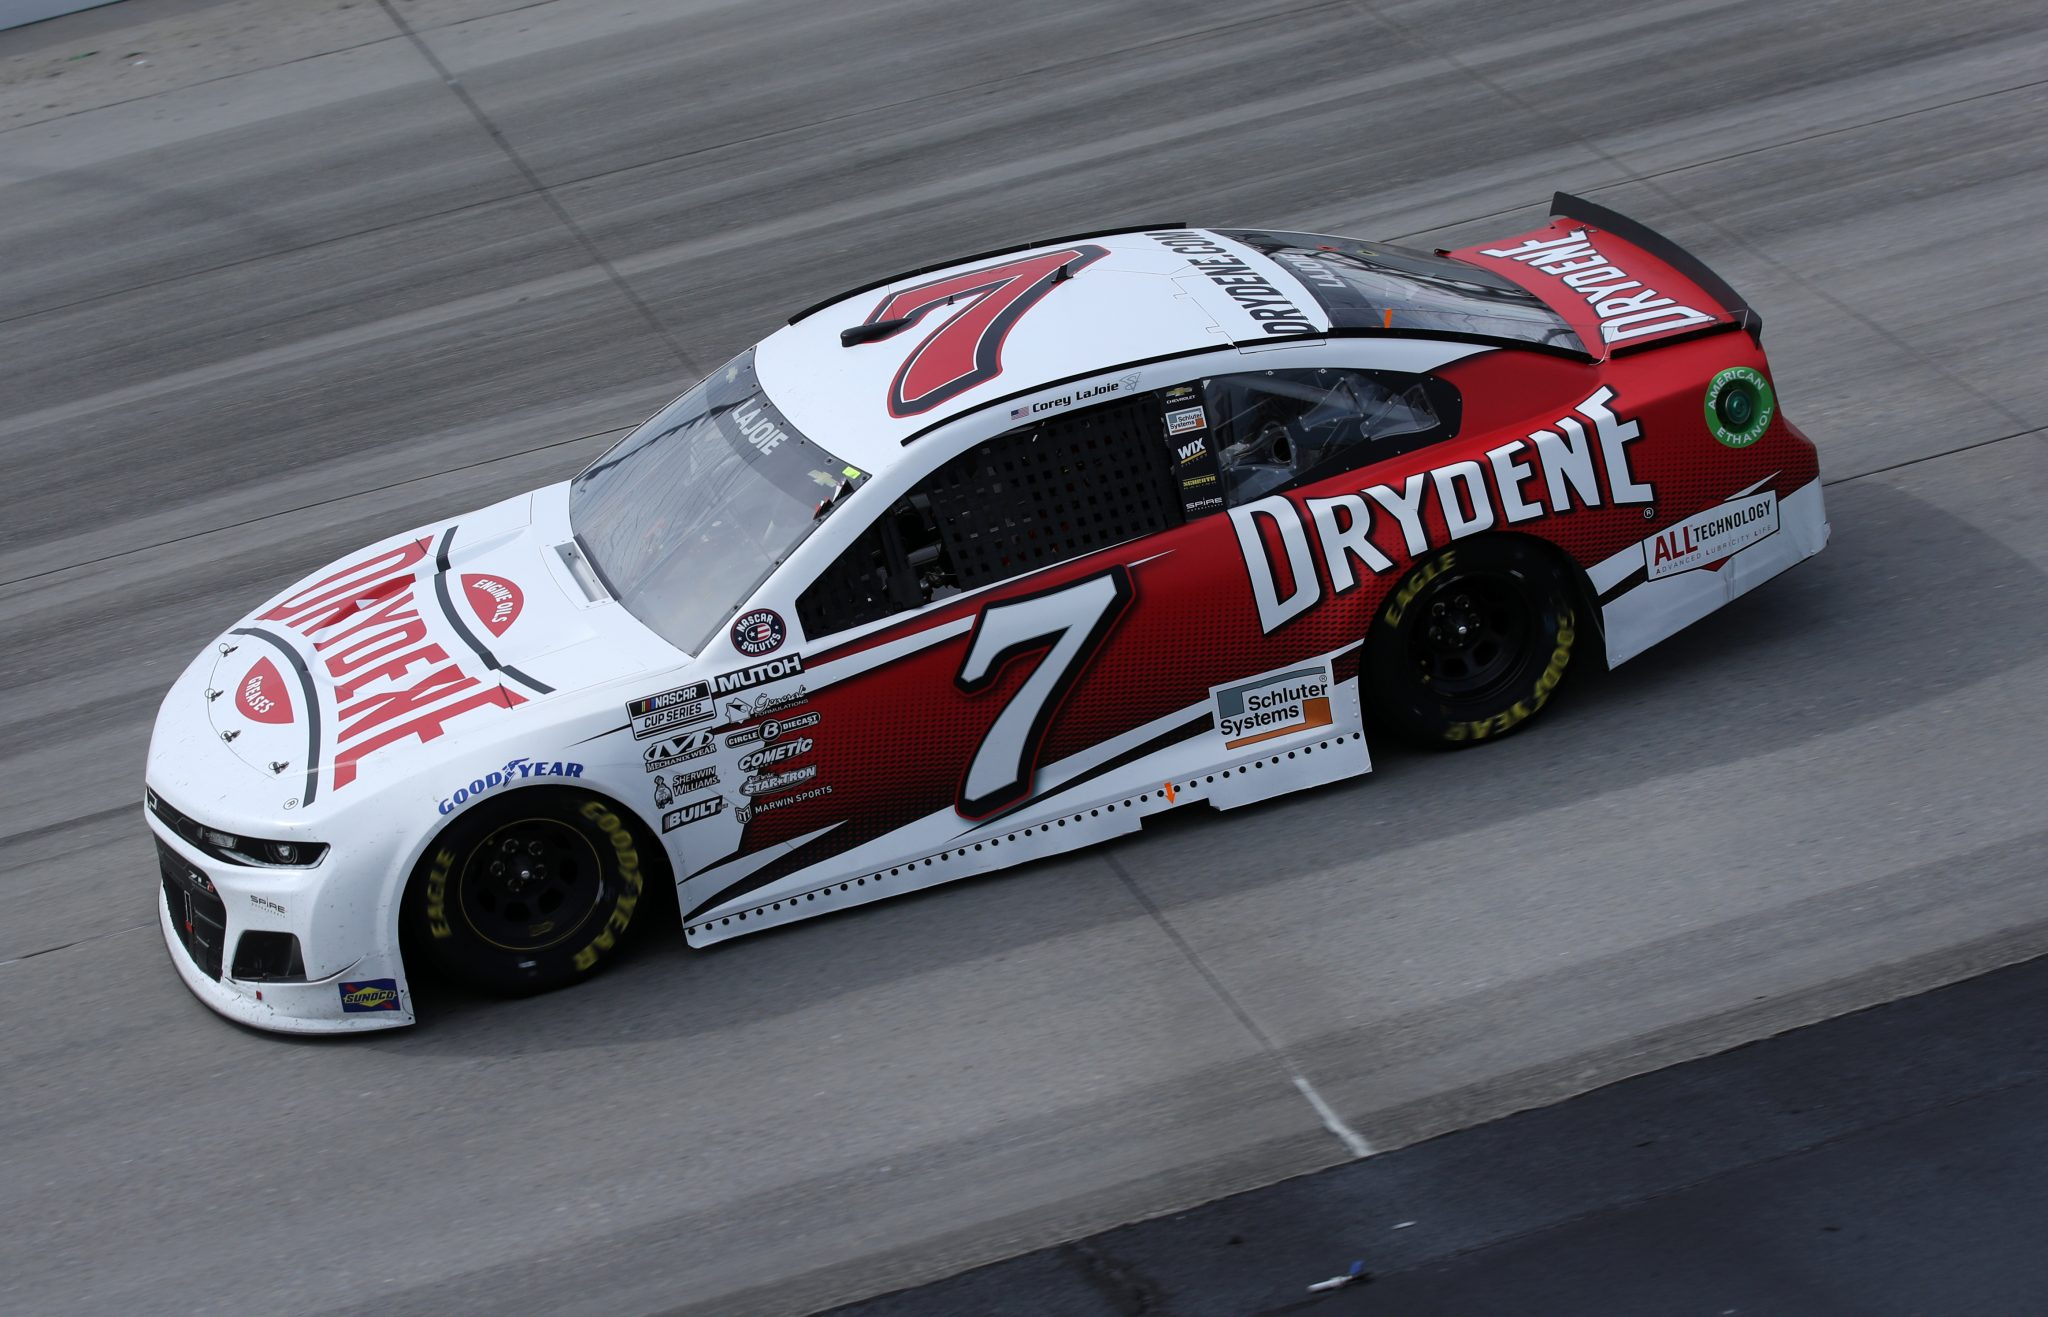 DOVER, DELAWARE - MAY 16: Corey LaJoie, driver of the #7 Drydene Performance Products Chevrolet, races during the NASCAR Cup Series Drydene 400 at Dover International Speedway on May 16, 2021 in Dover, Delaware. (Photo by Sean Gardner/Getty Images) | Getty Images